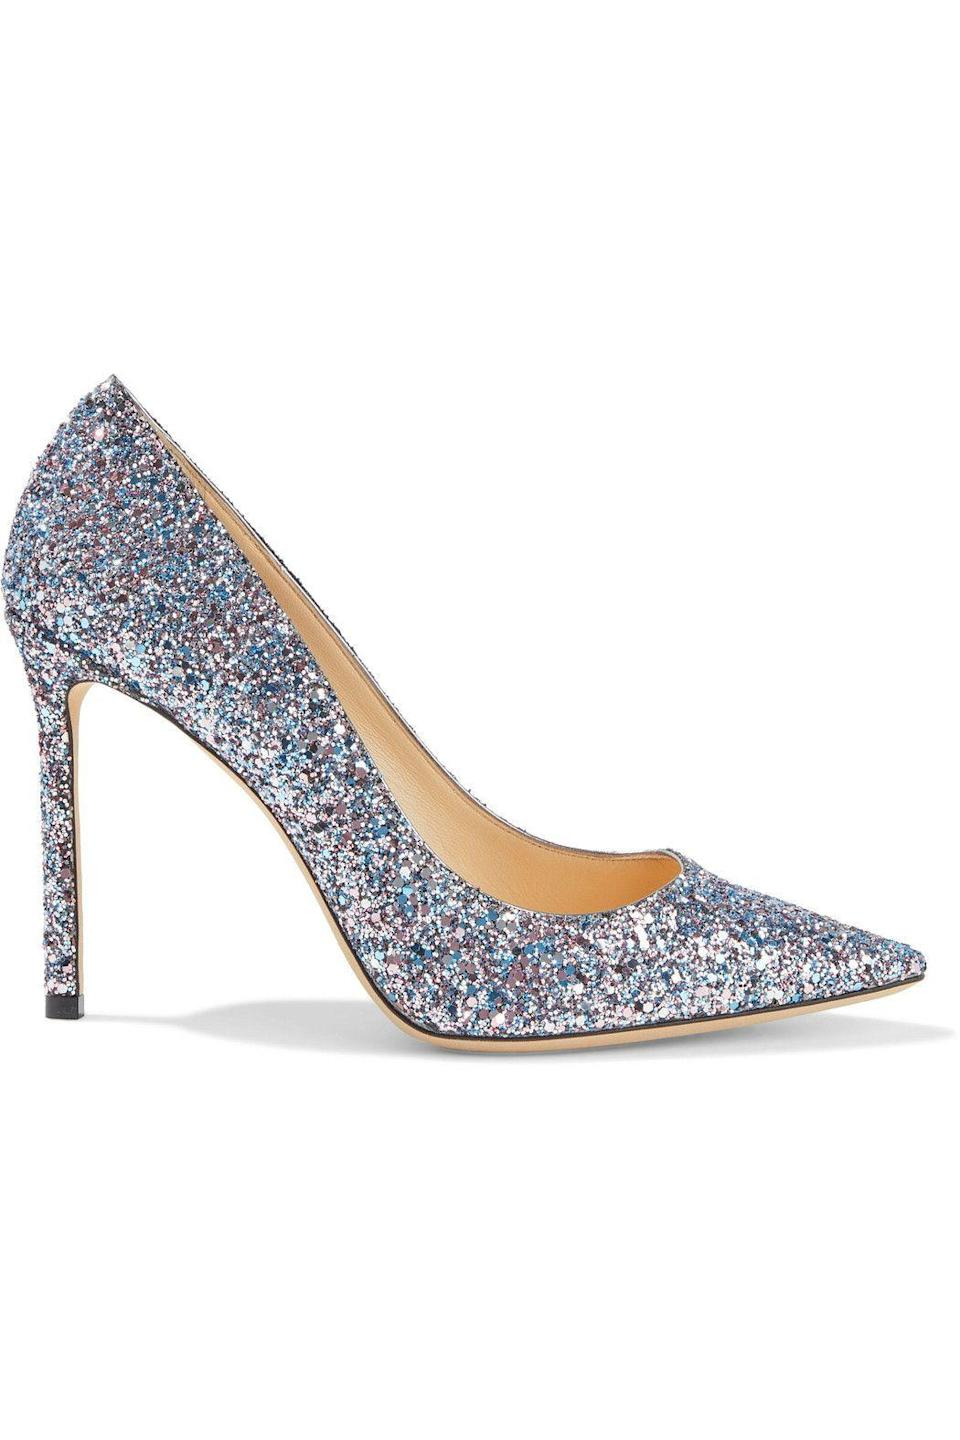 """<p><strong>JIMMY CHOO</strong></p><p>theoutnet.com</p><p><strong>$337.00</strong></p><p><a href=""""https://go.redirectingat.com?id=74968X1596630&url=https%3A%2F%2Fwww.theoutnet.com%2Fen-us%2Fshop%2Fproduct%2Fjimmy-choo%2Fpumps%2Fhigh-heel-pumps%2Fromy-100-glittered-woven-pumps%2F2204324140401667&sref=https%3A%2F%2Fwww.redbookmag.com%2Ffashion%2Fg34807151%2Fthe-outnets-black-friday-sale-2020%2F"""" rel=""""nofollow noopener"""" target=""""_blank"""" data-ylk=""""slk:Shop Now"""" class=""""link rapid-noclick-resp"""">Shop Now</a></p><p>And so does a pair of sparkly ones. </p>"""